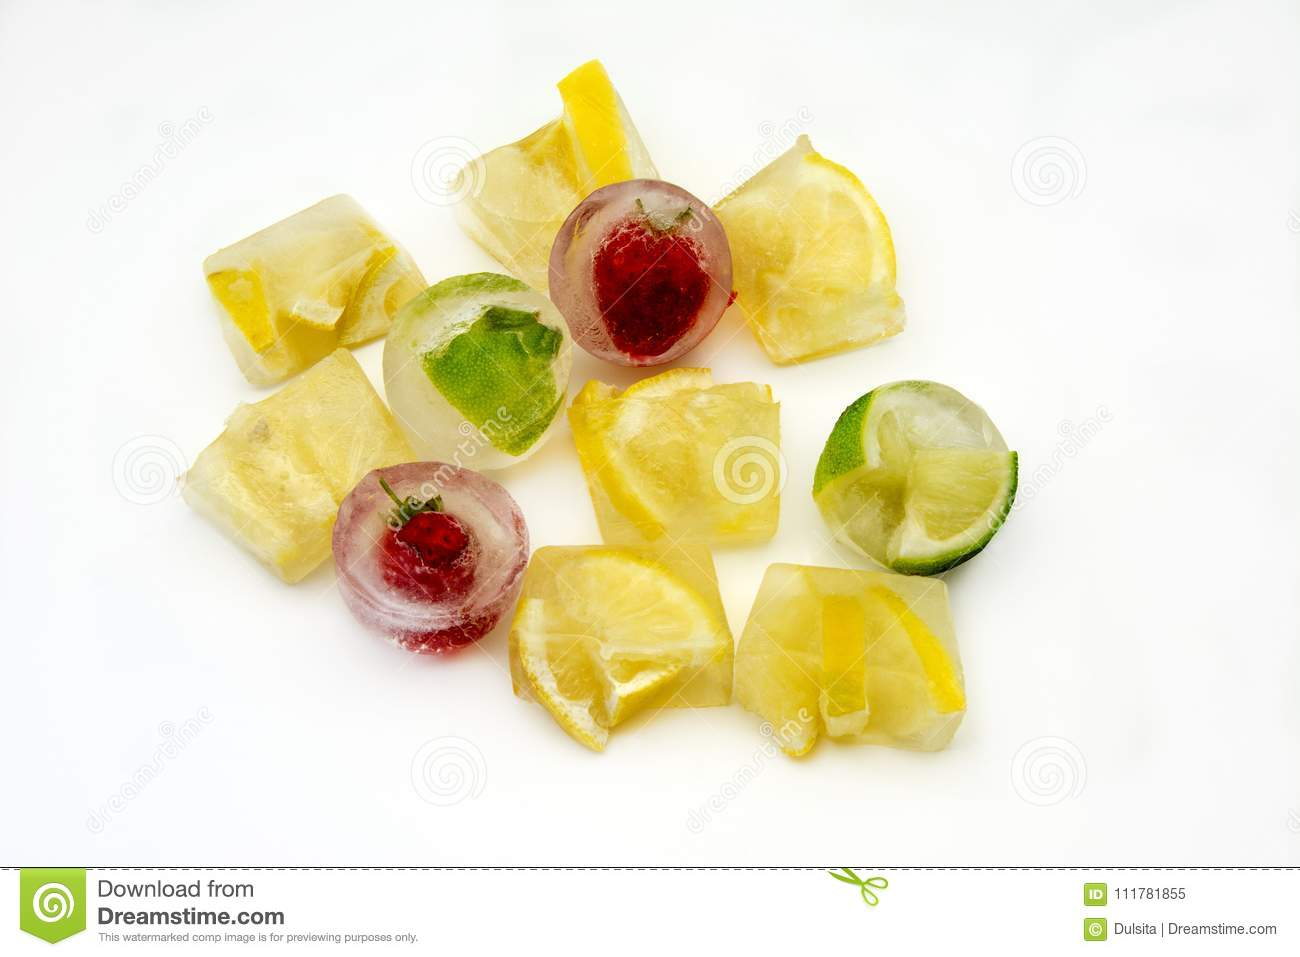 Ice cubes with lemons and strawberries